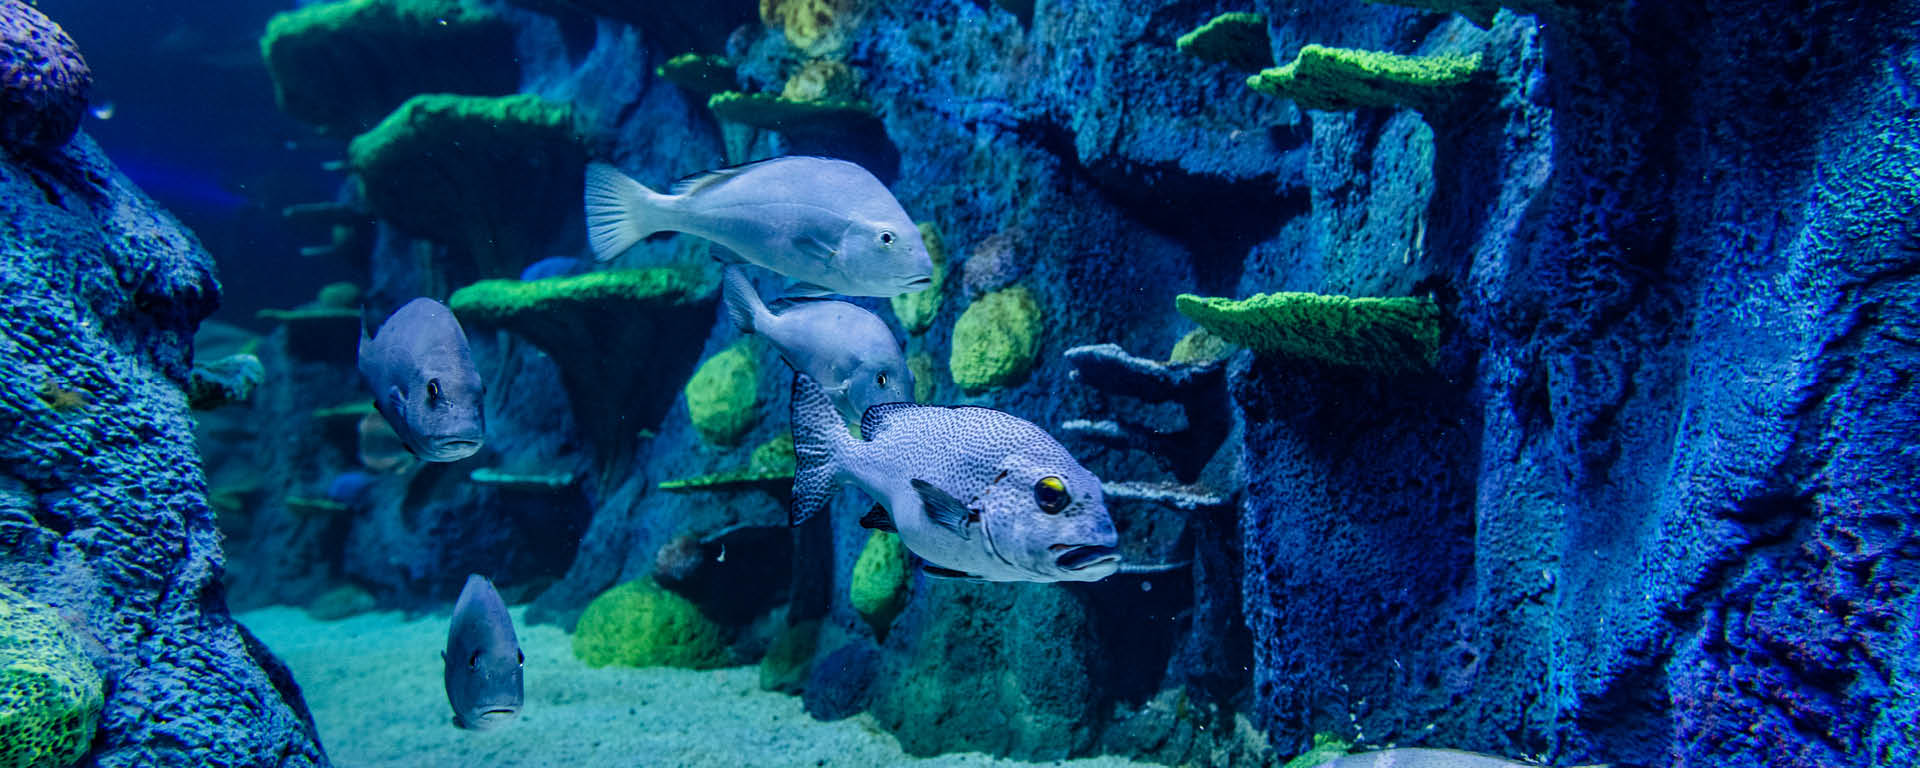 Reef Fish In Day And Night